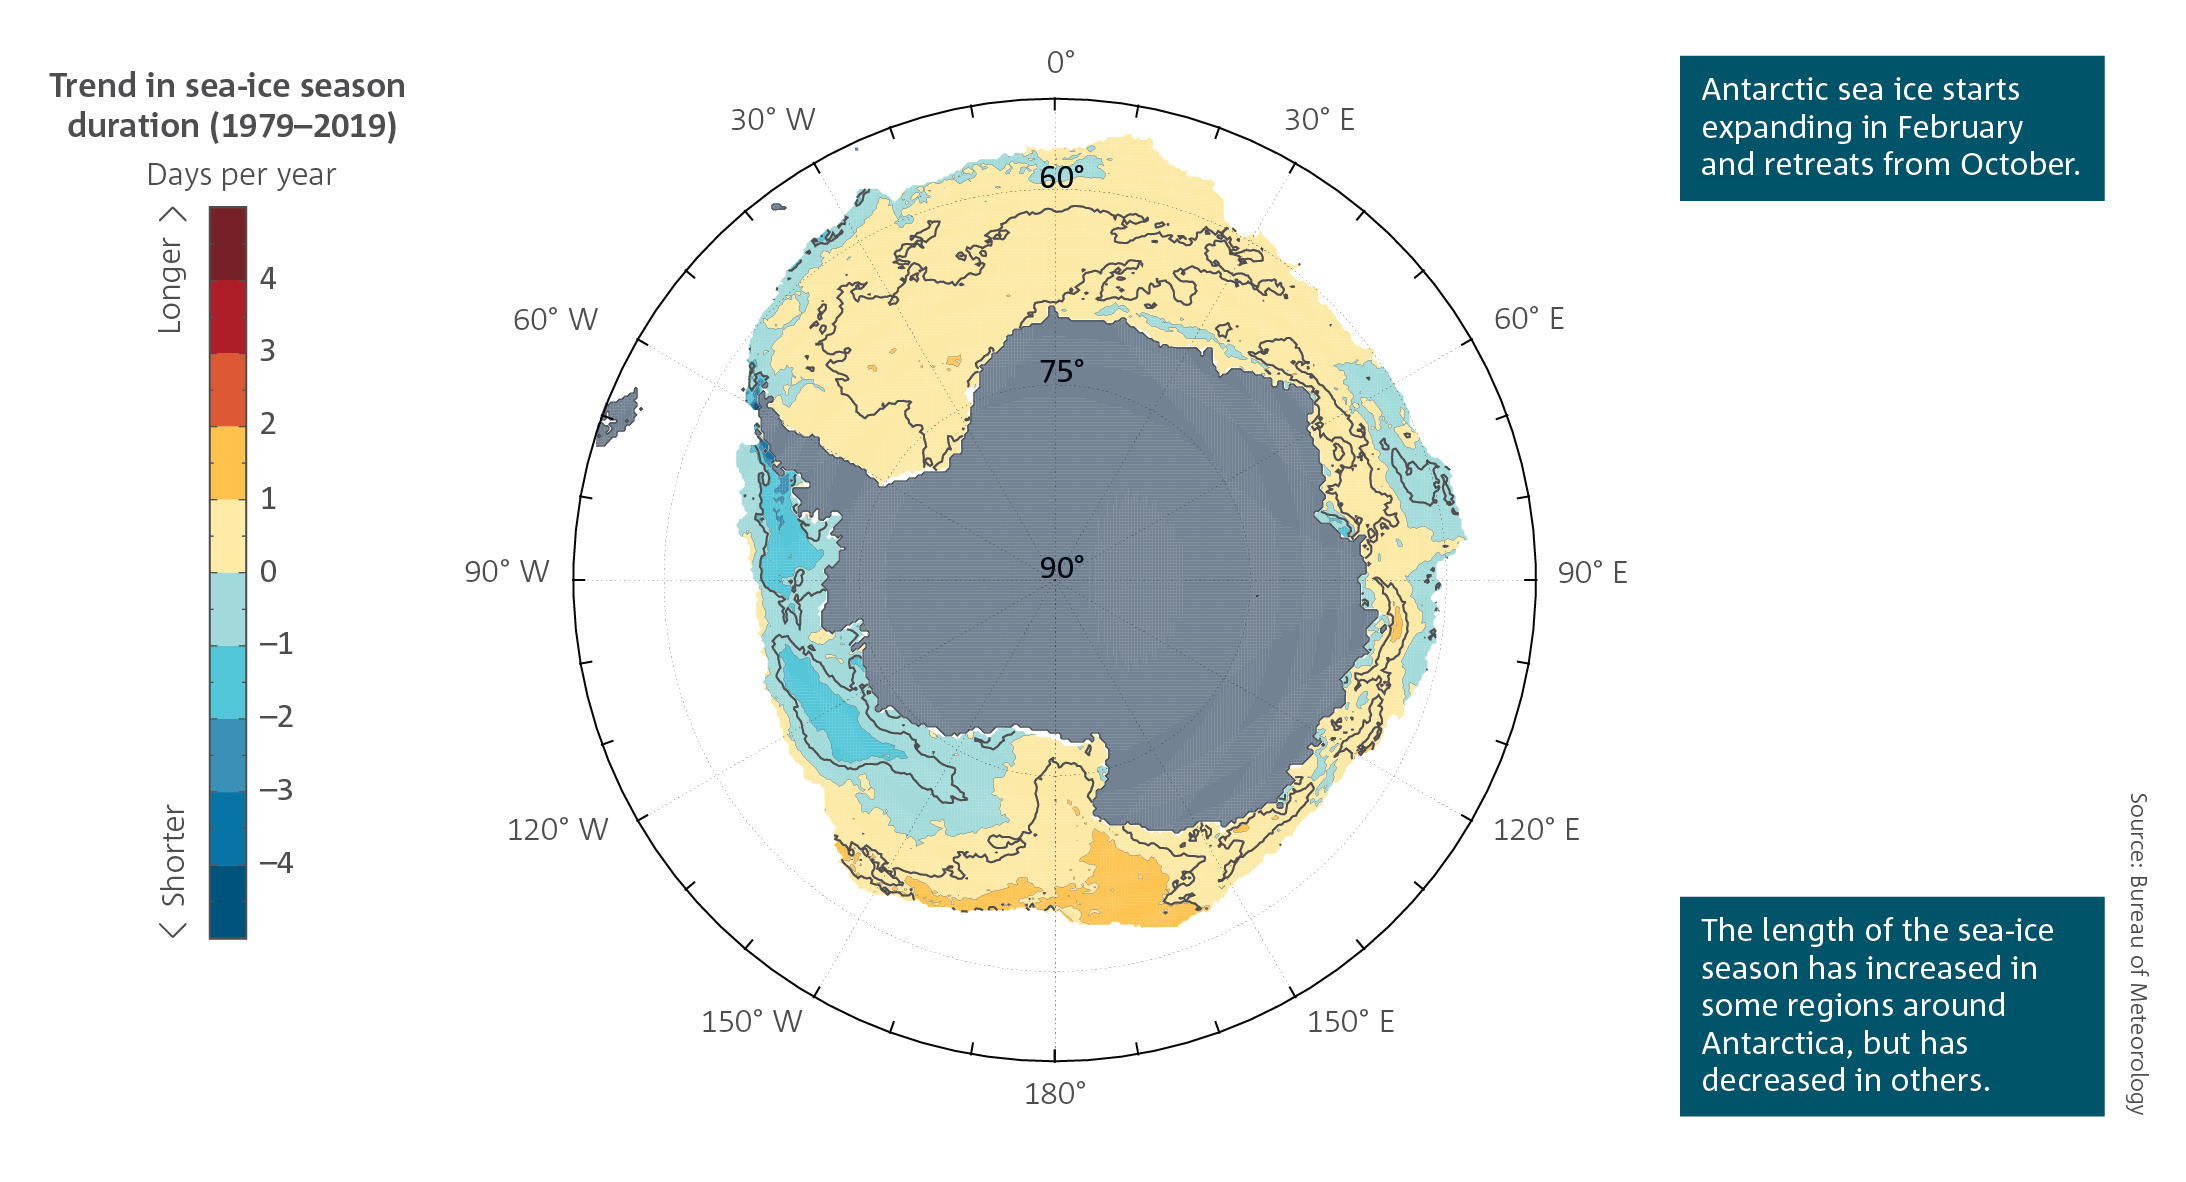 Antarctic sea ice starts expanding in February and retreats from October.  The length of the sea-ice season has increased in some regions around Antarctica, but has decreased in others.  Spatial plot of Antarctica showing trends in the length of the sea-ice season each year (in days per year) around Antarctica from 1979–1980 to 2018–2019.  For a full description of this figure please contact: helpdesk.climate@bom.gov.au